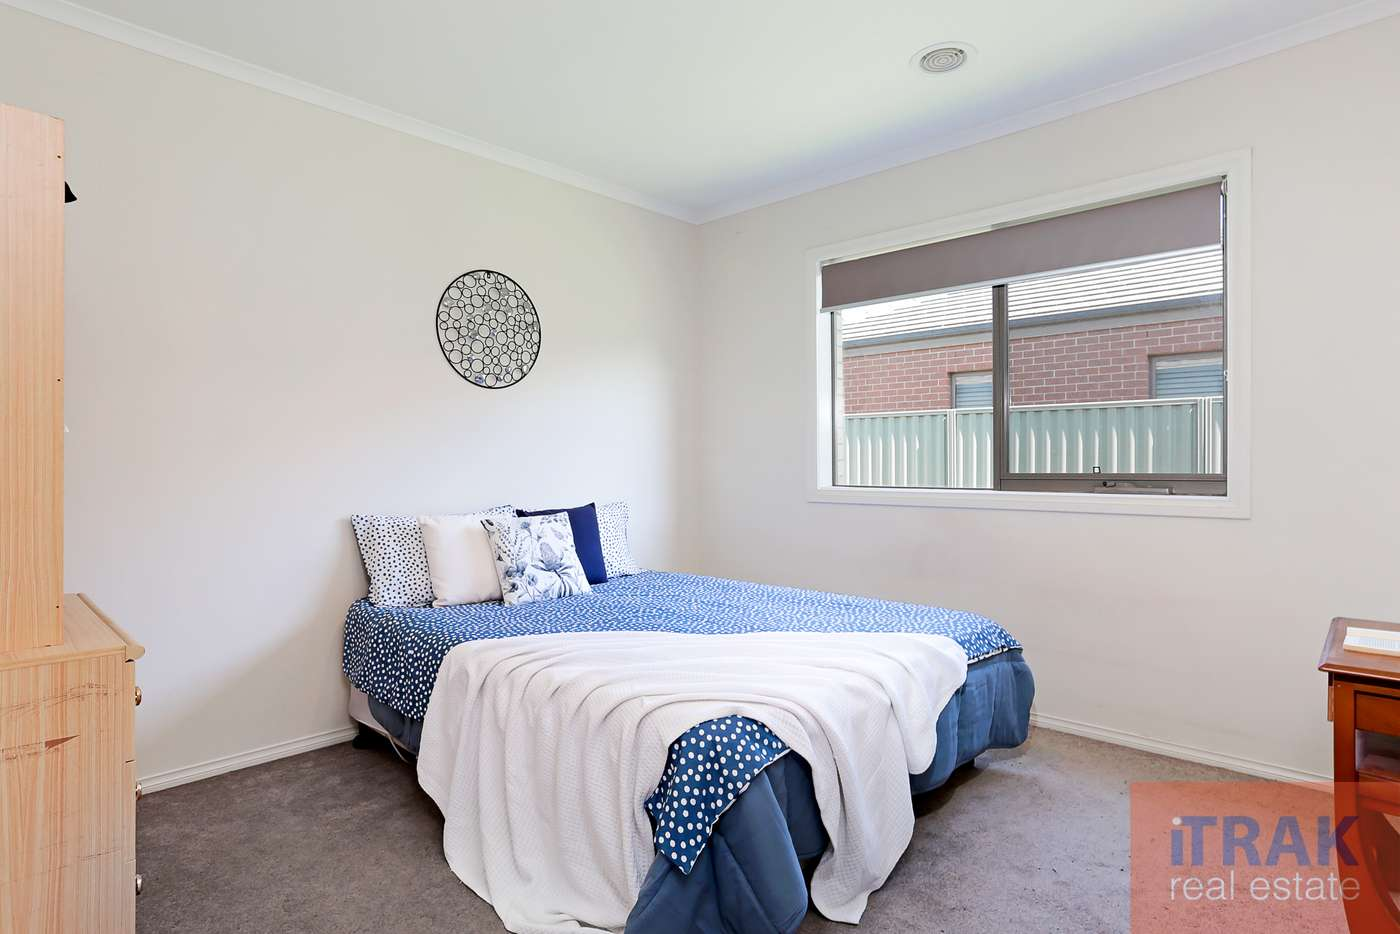 Sixth view of Homely house listing, 7 Haines Street, Cranbourne East VIC 3977